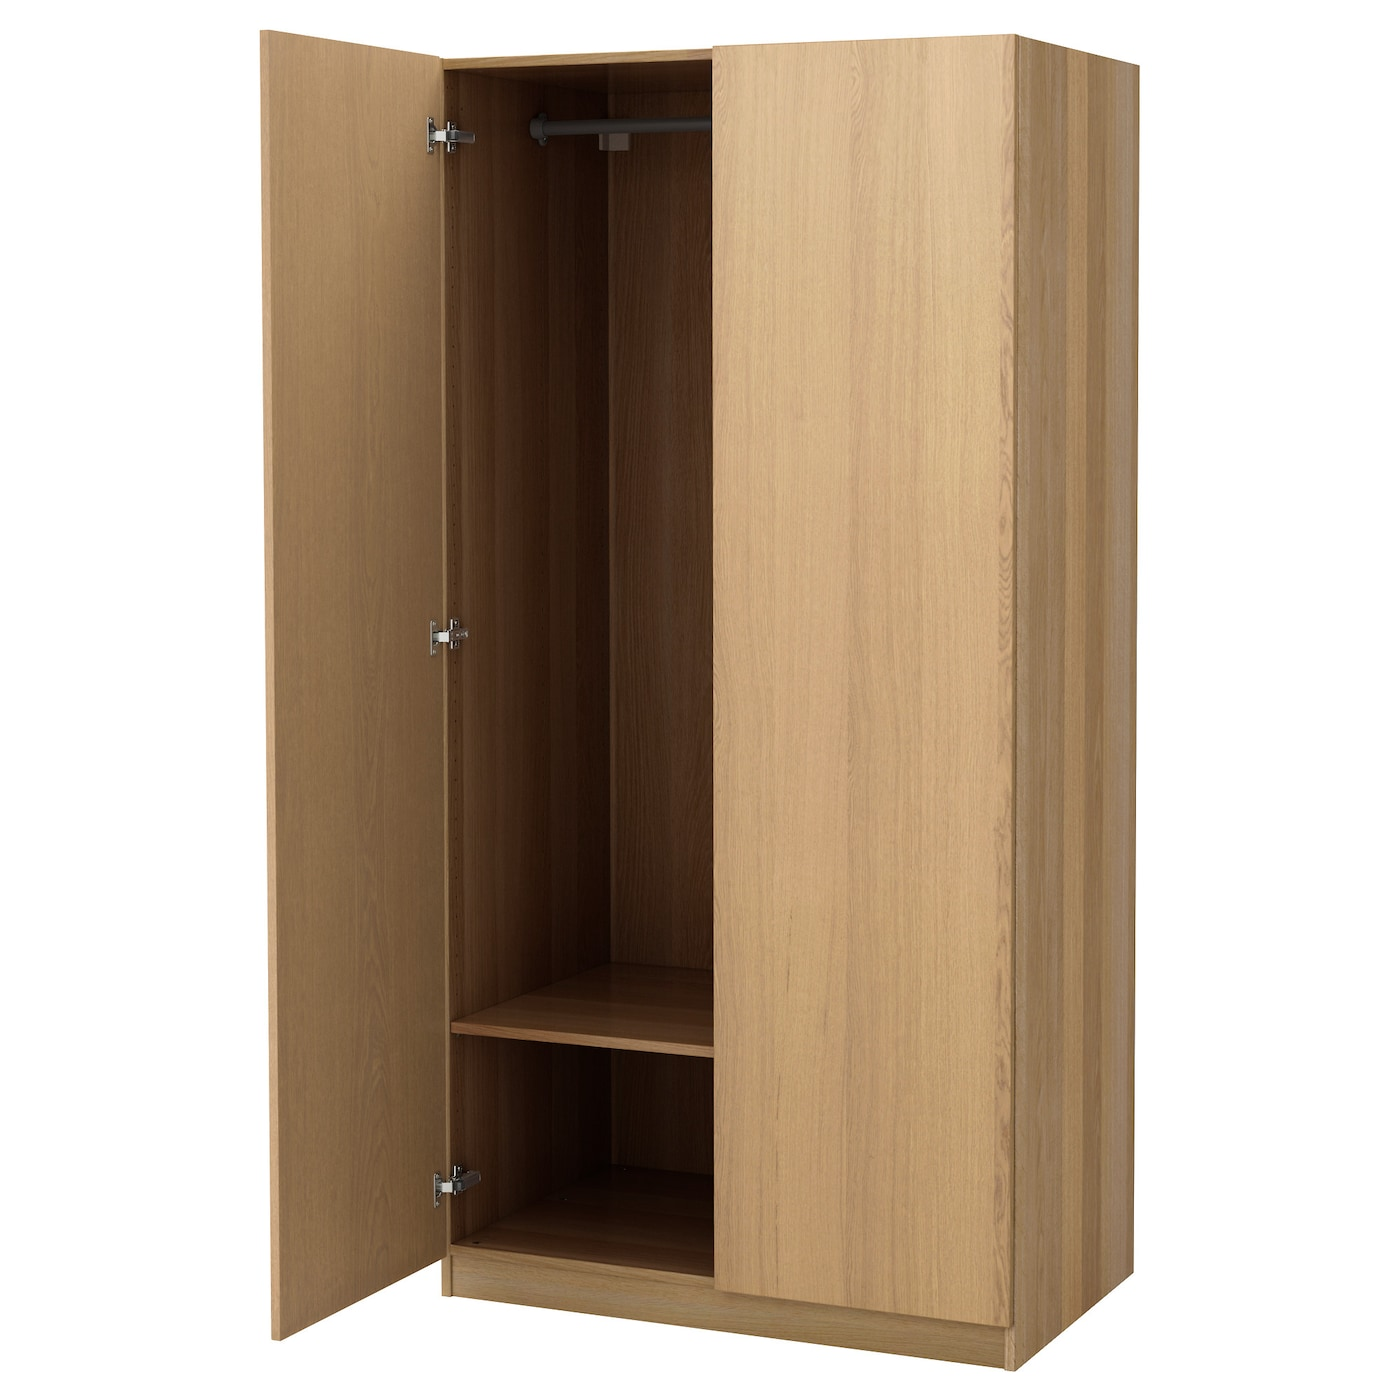 pax wardrobe oak effect nexus oak veneer 100x60x201 cm ikea. Black Bedroom Furniture Sets. Home Design Ideas